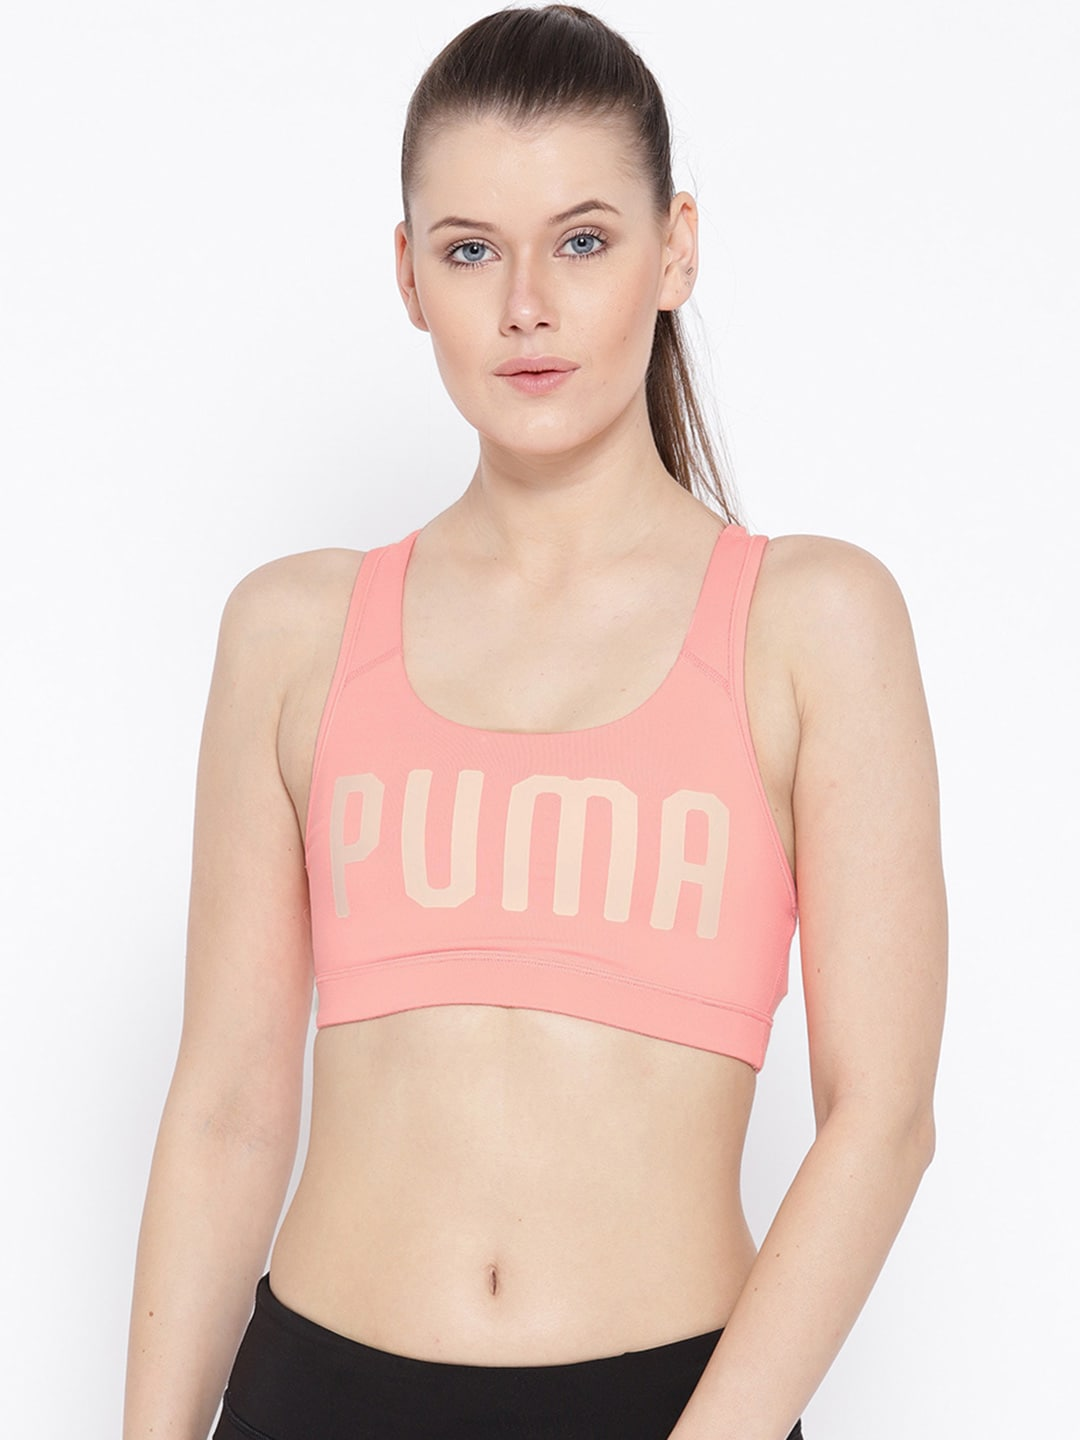 8ea193ae94629 Women Accessories Puma Wallets Bra Sports Shoes - Buy Women Accessories Puma  Wallets Bra Sports Shoes online in India